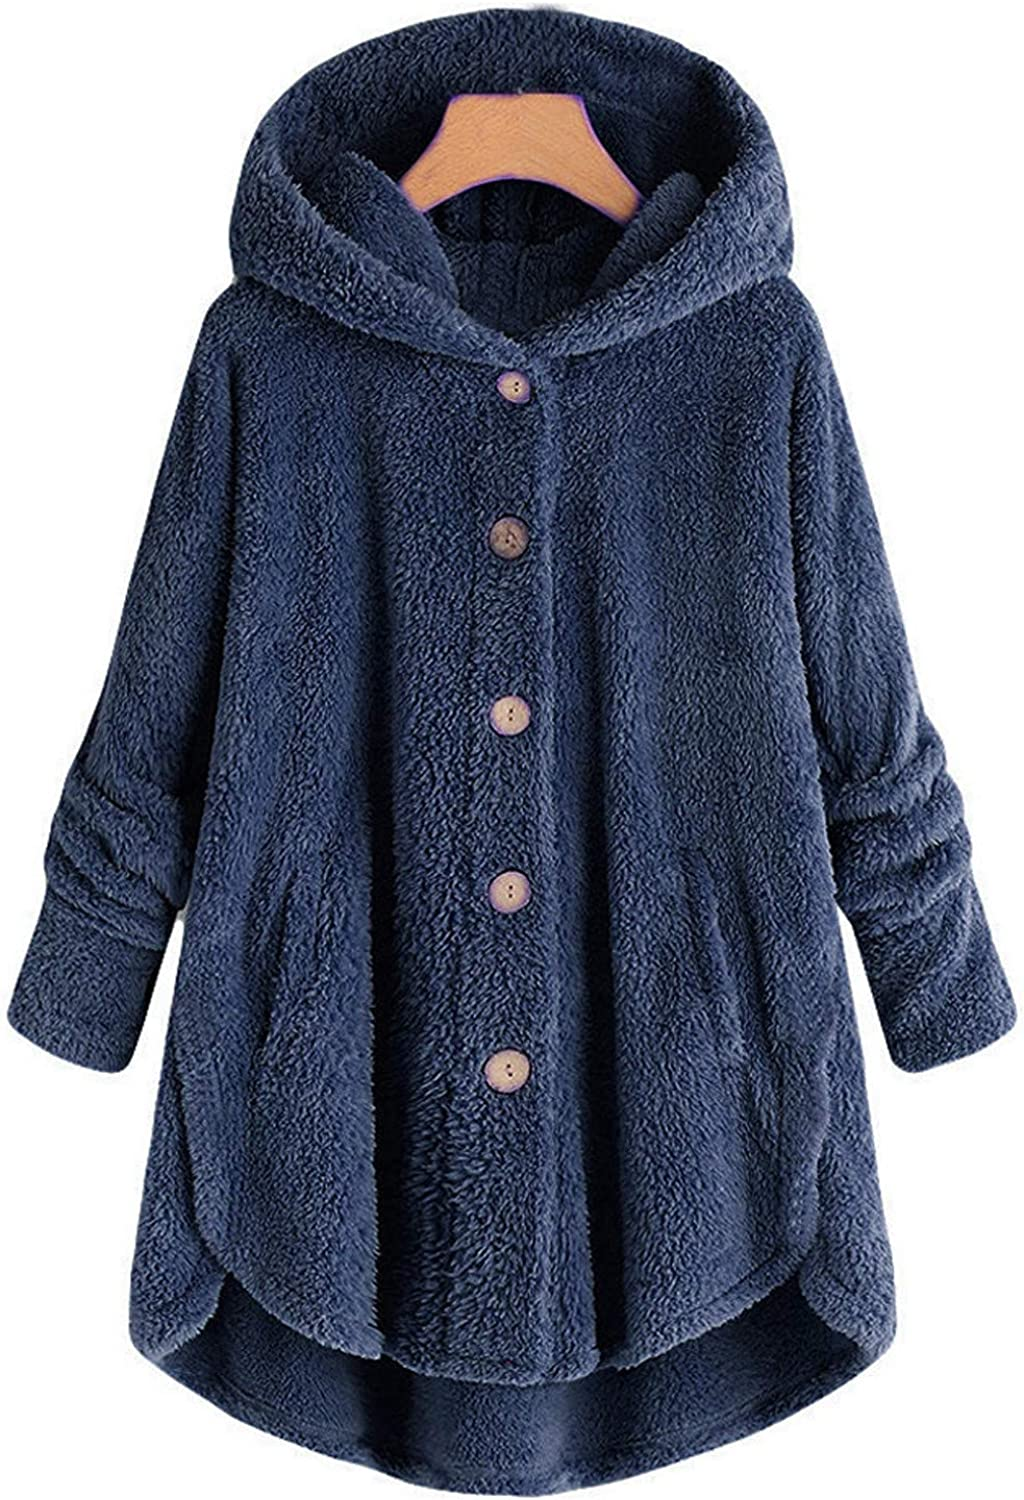 Womens Oversized Cardigan Hoodies Casual Warm Plush Coat Solid Color Long Sleeve Ladies Fashion Winter Loose Jacket Top